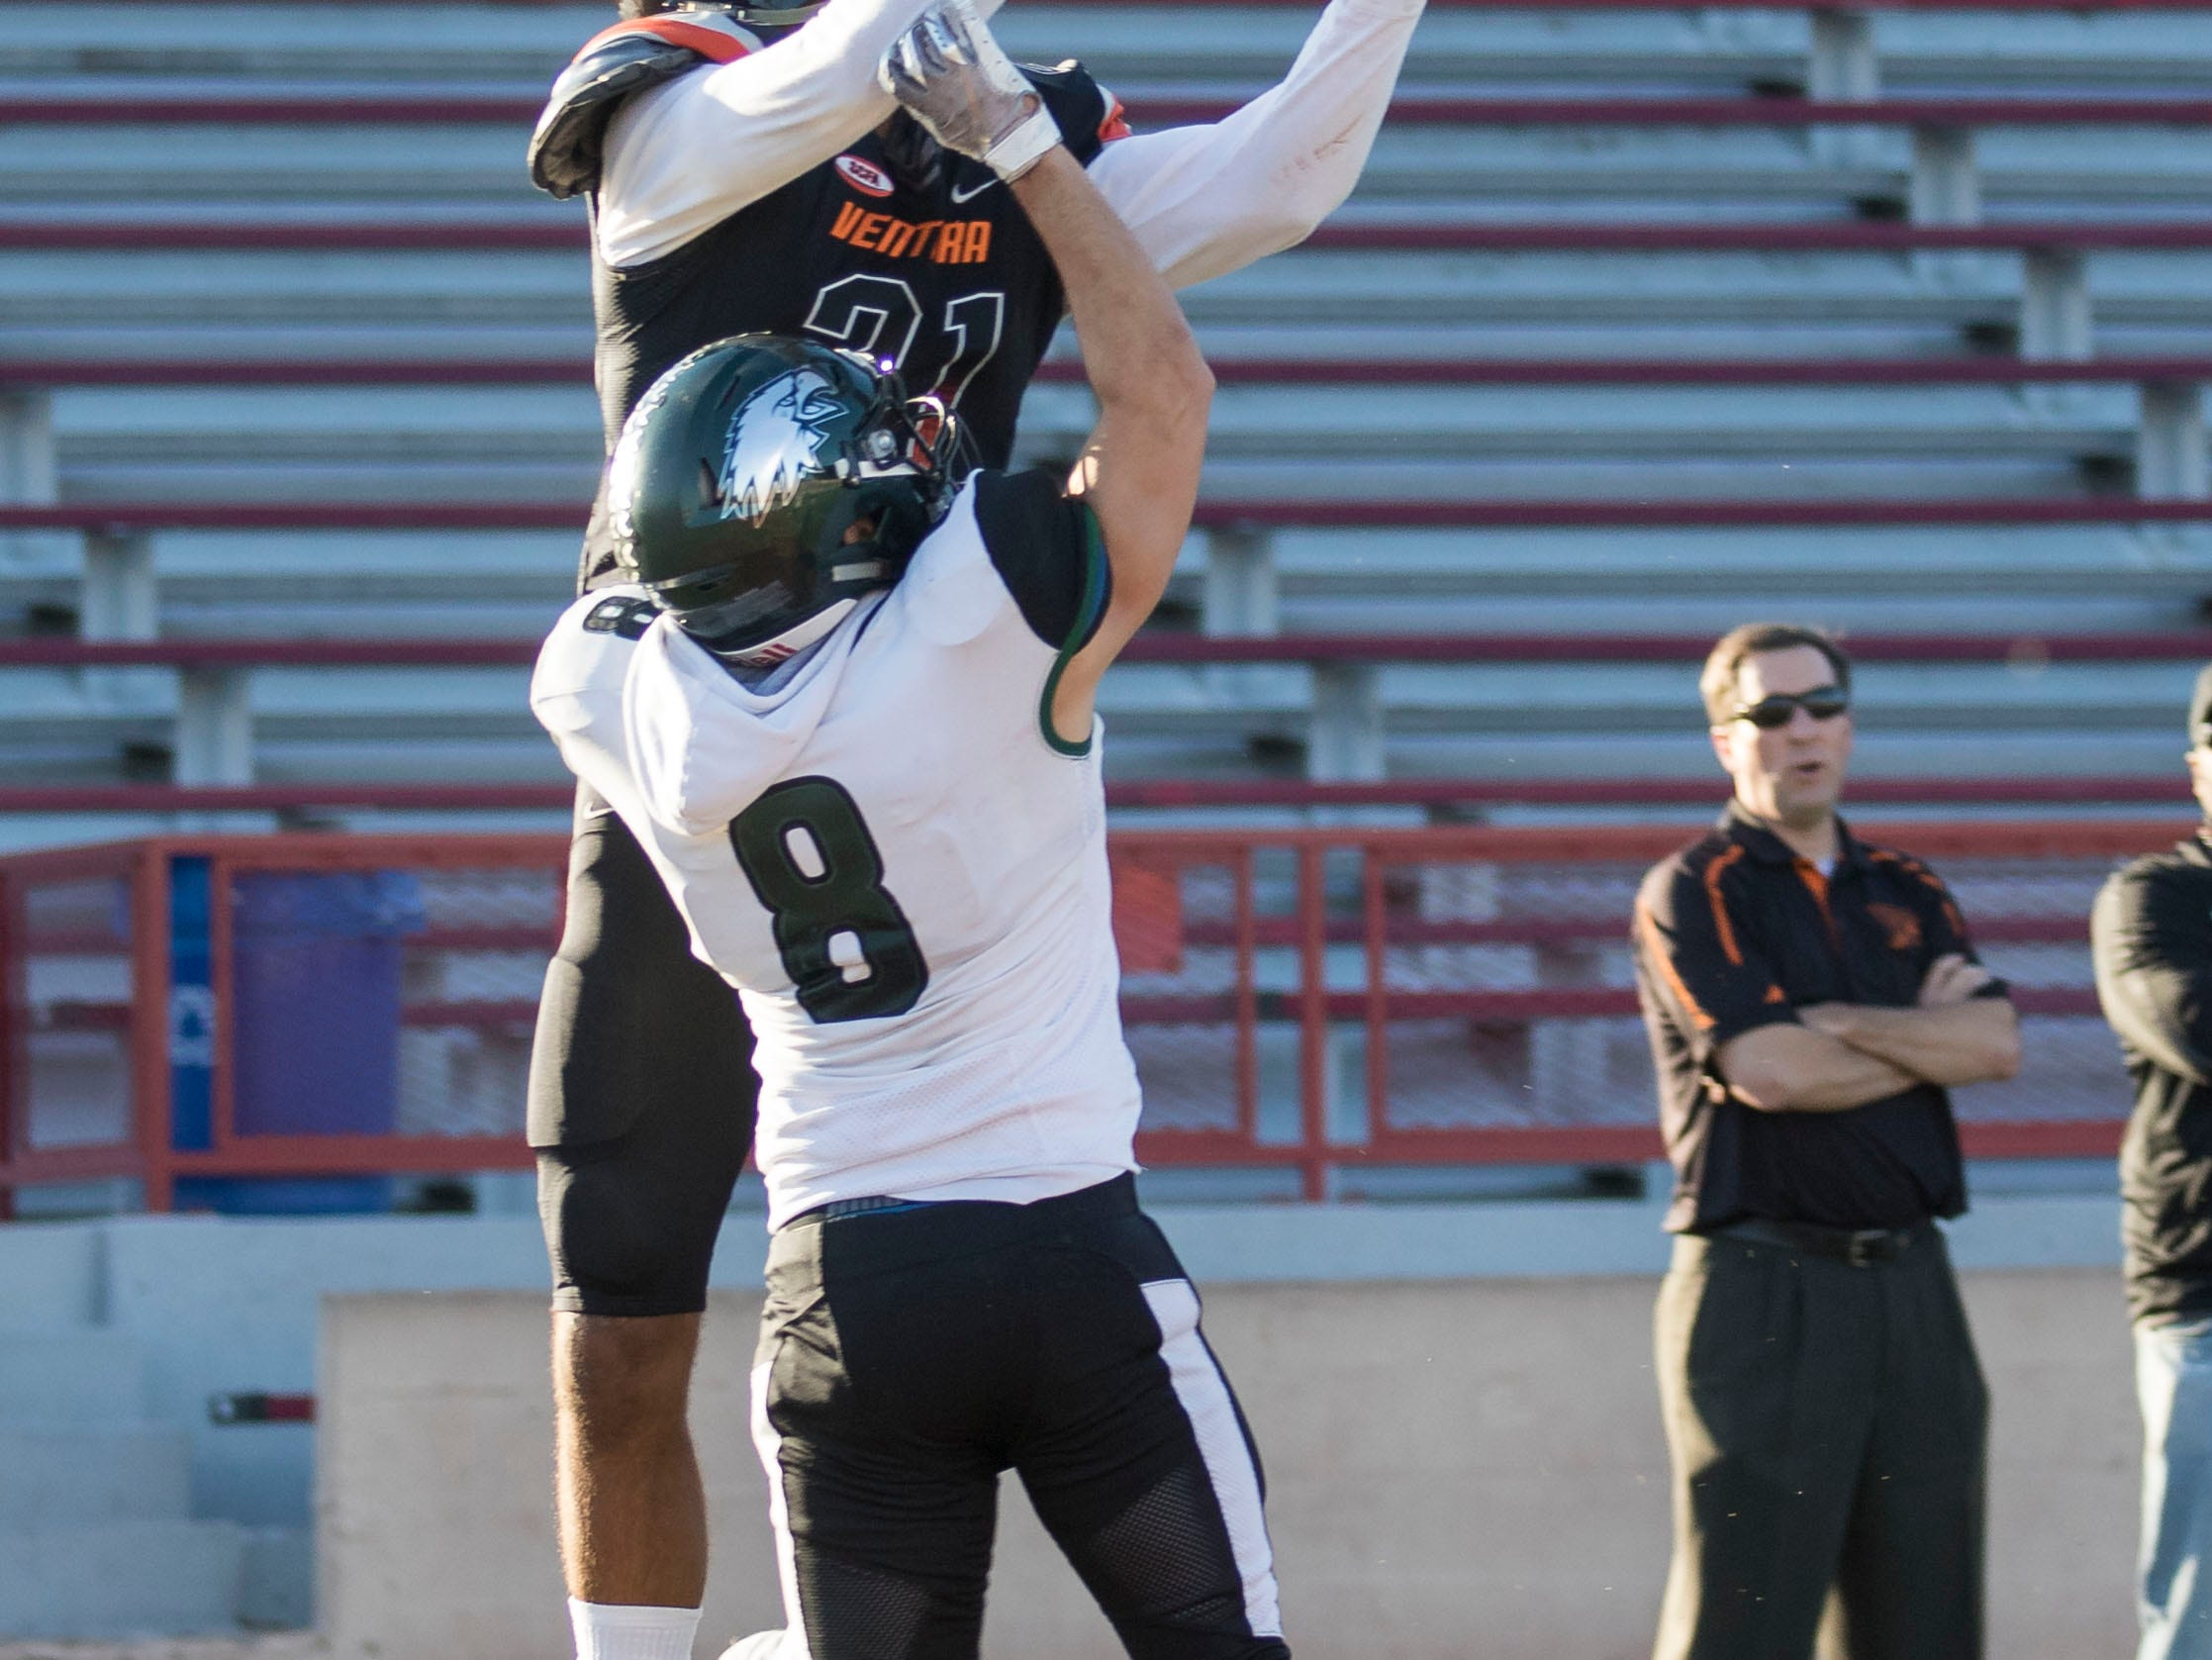 Ventura College sophomore receiver Brandon Jordan rises over Laney College Imani Moore (8) to catch his third touchdown of the day in the CCCAA state championship game on Saturday afternoon at Sacramento City's Hughes Stadium. Laney won, 40-35.